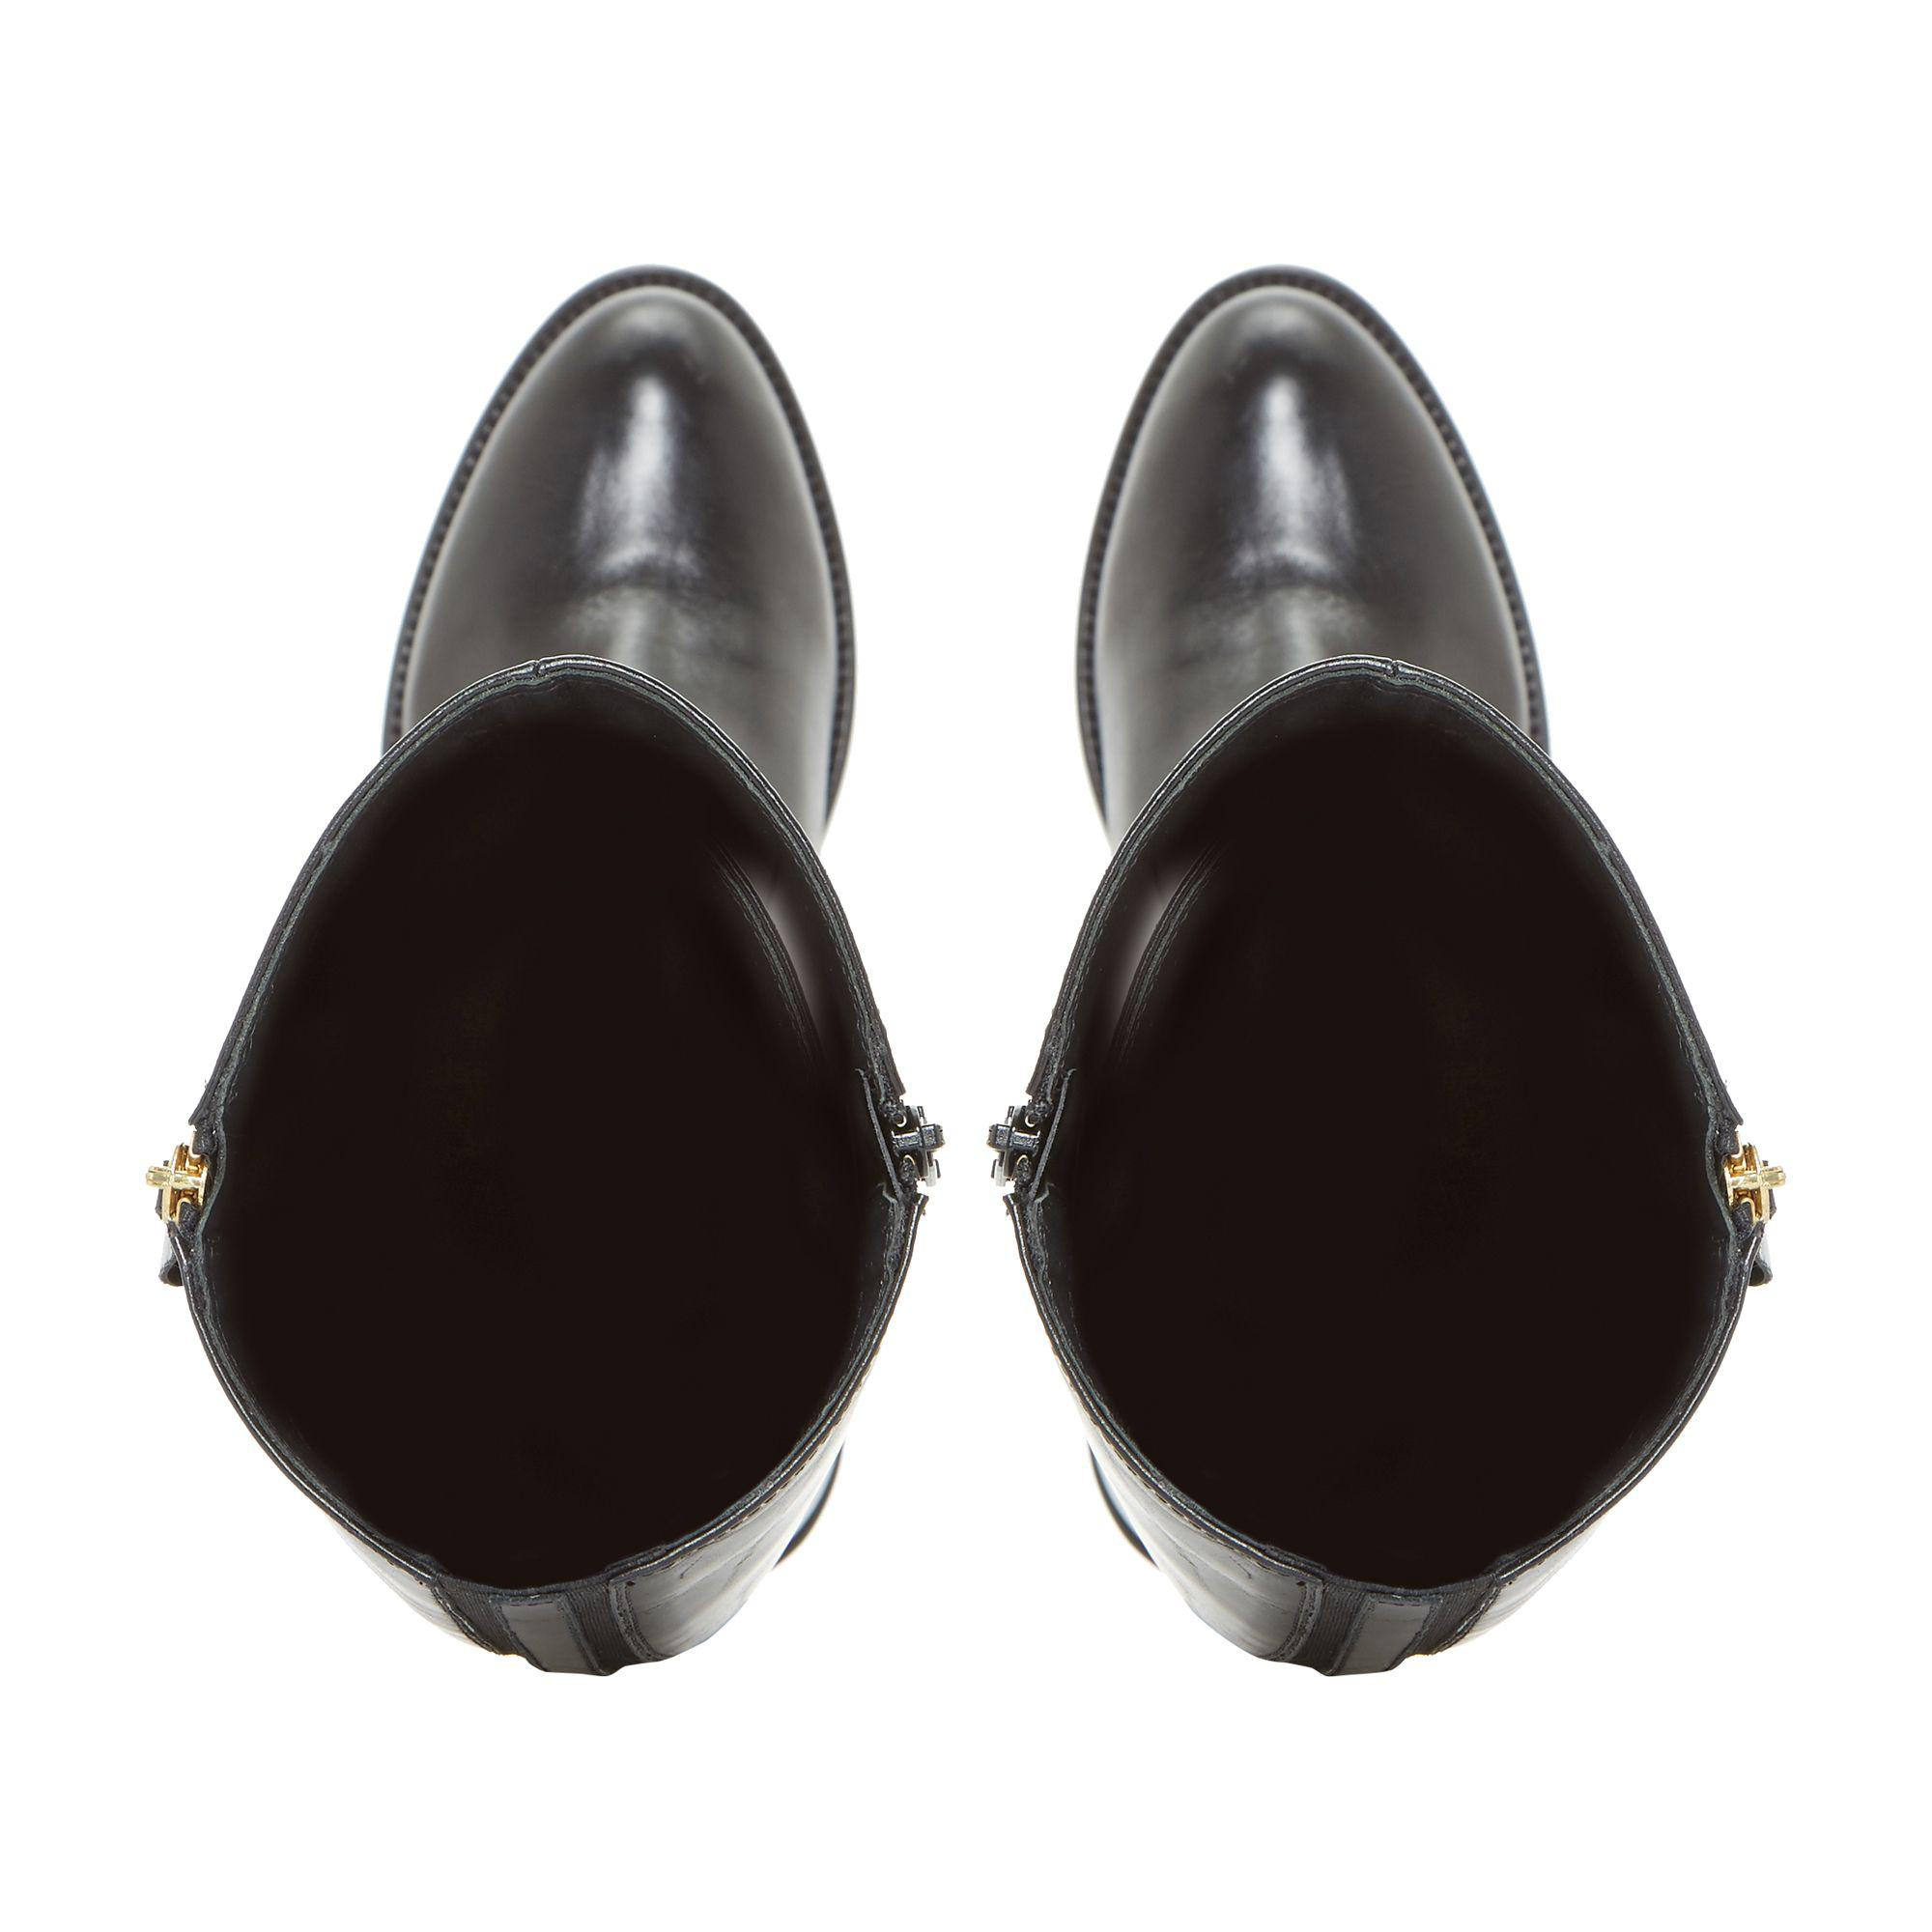 Dune Black 'tillyy' Side Zip Leather Riding Boots